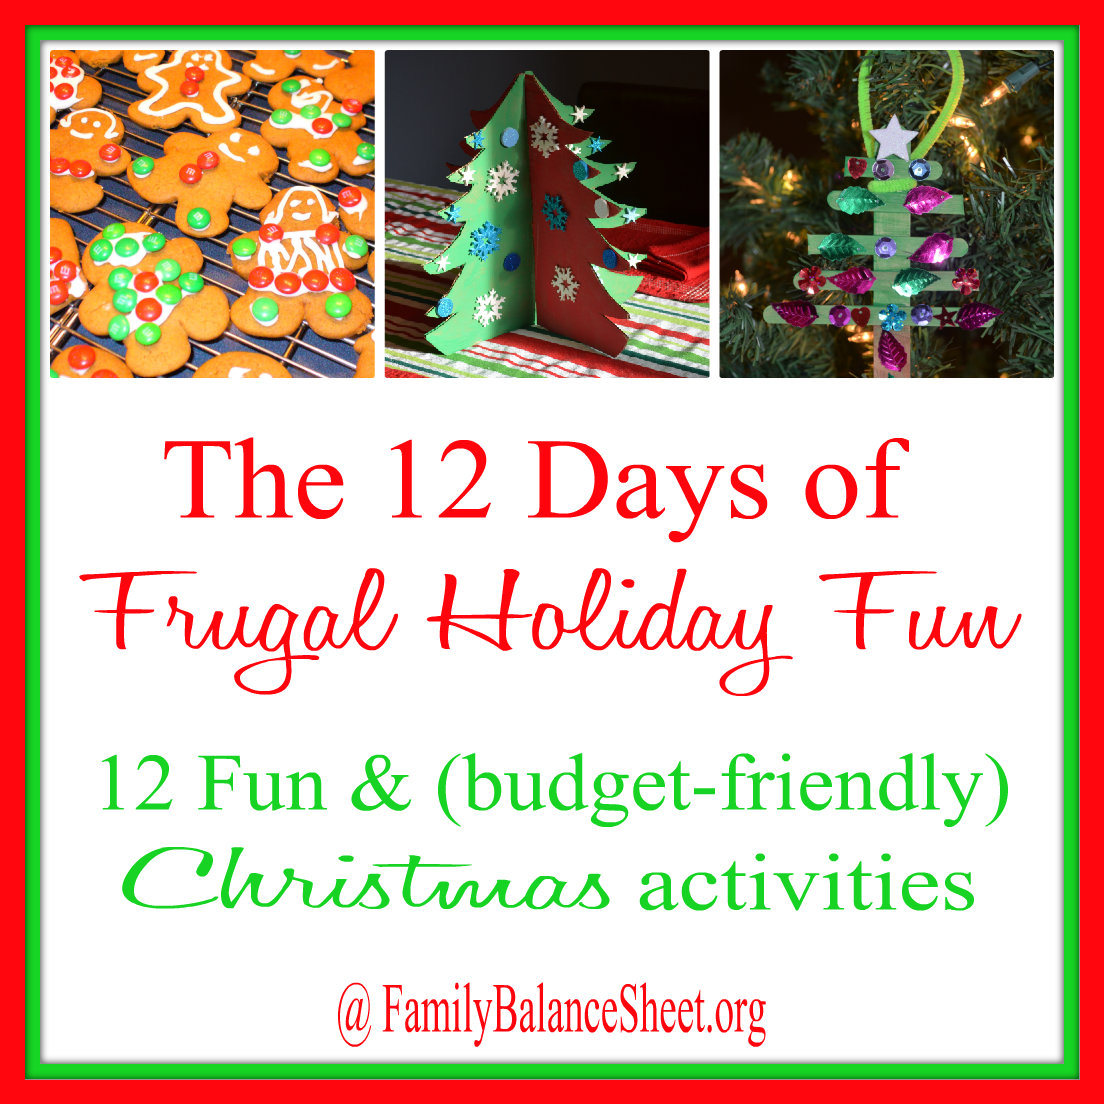 Church christmas programs - Day 7 Of The 12 Days Of Frugal Holiday Fun Attend Christmas Programs At Church